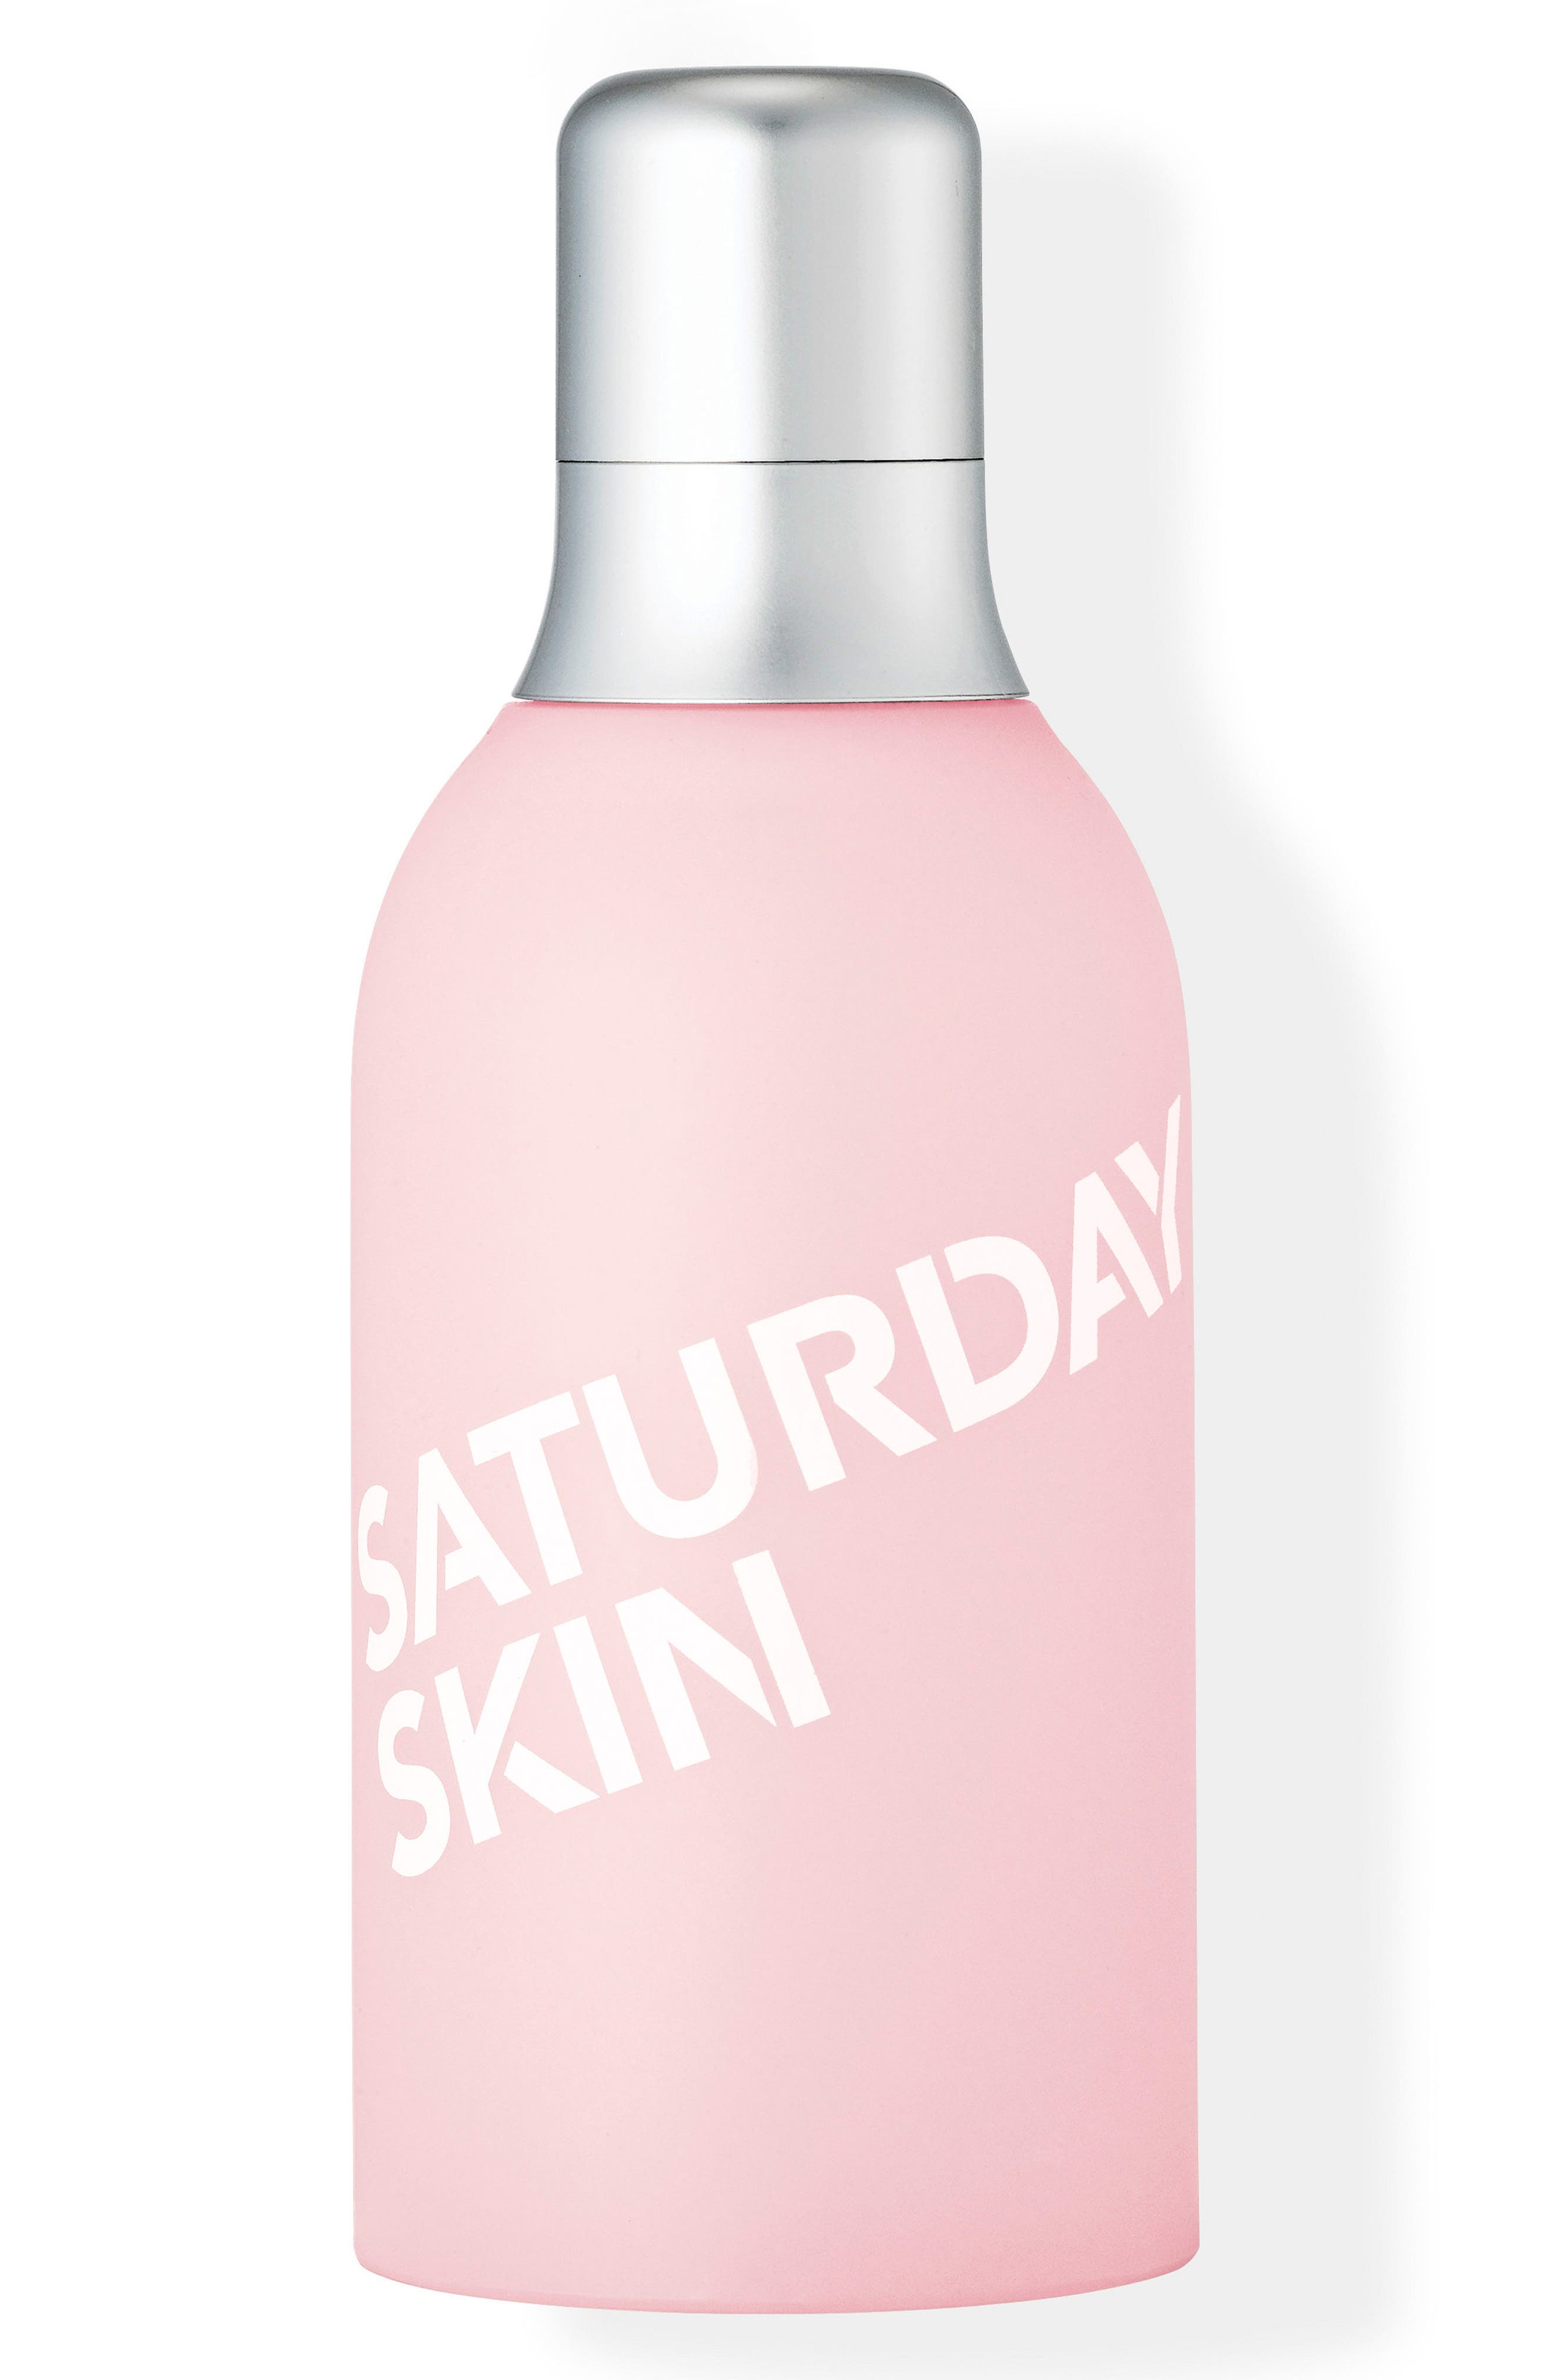 SATURDAY SKIN Daily Dew Hydrating Essence Mist, Main, color, NO COLOR